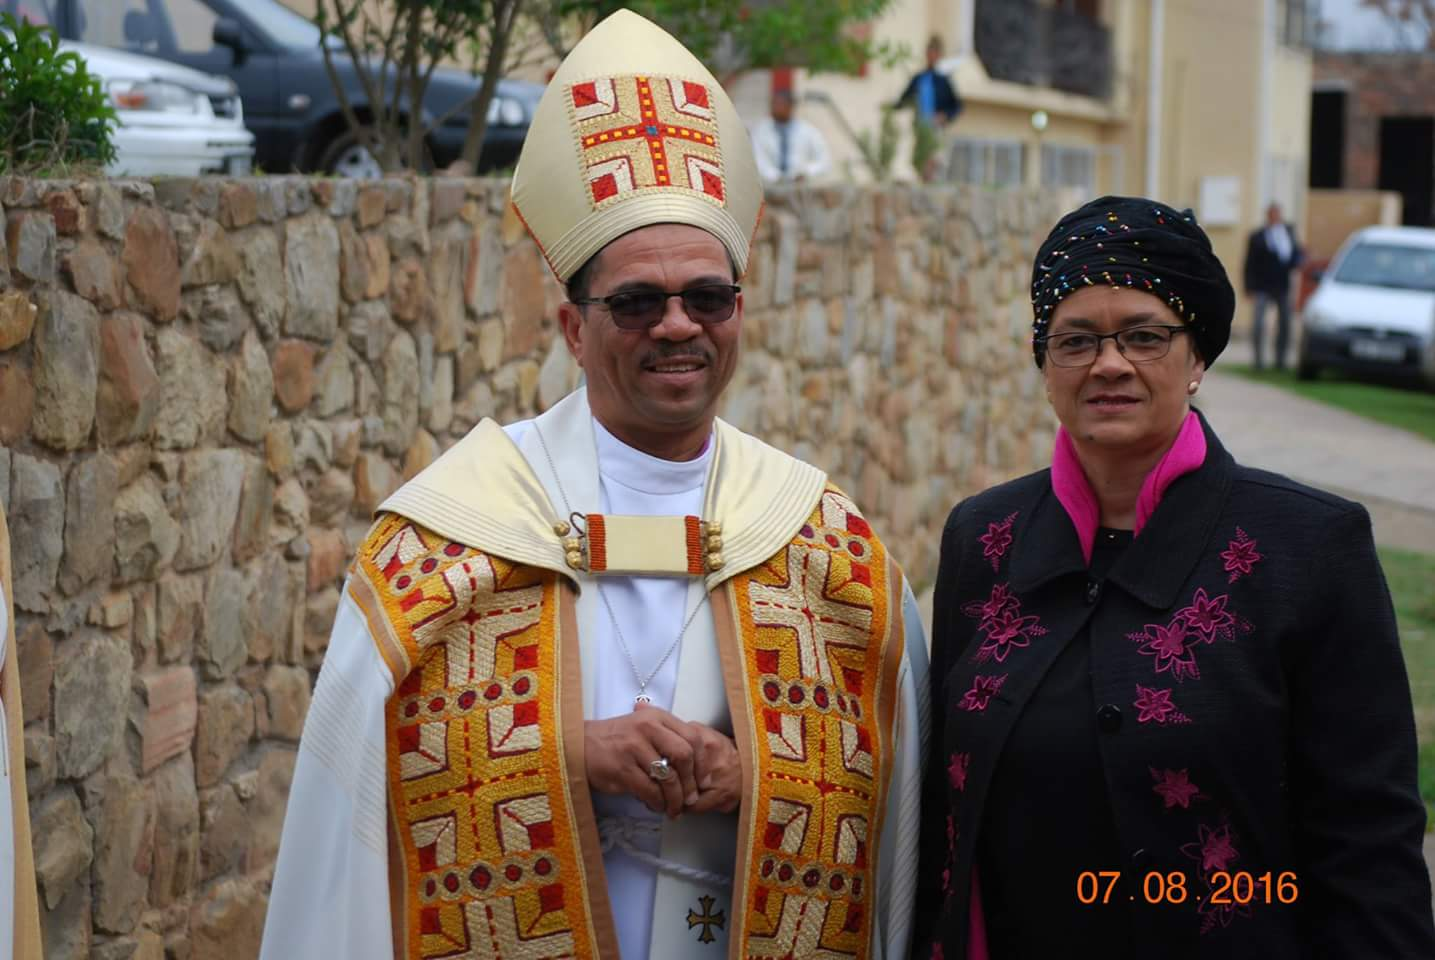 Bishop Allan and his wife, Connie